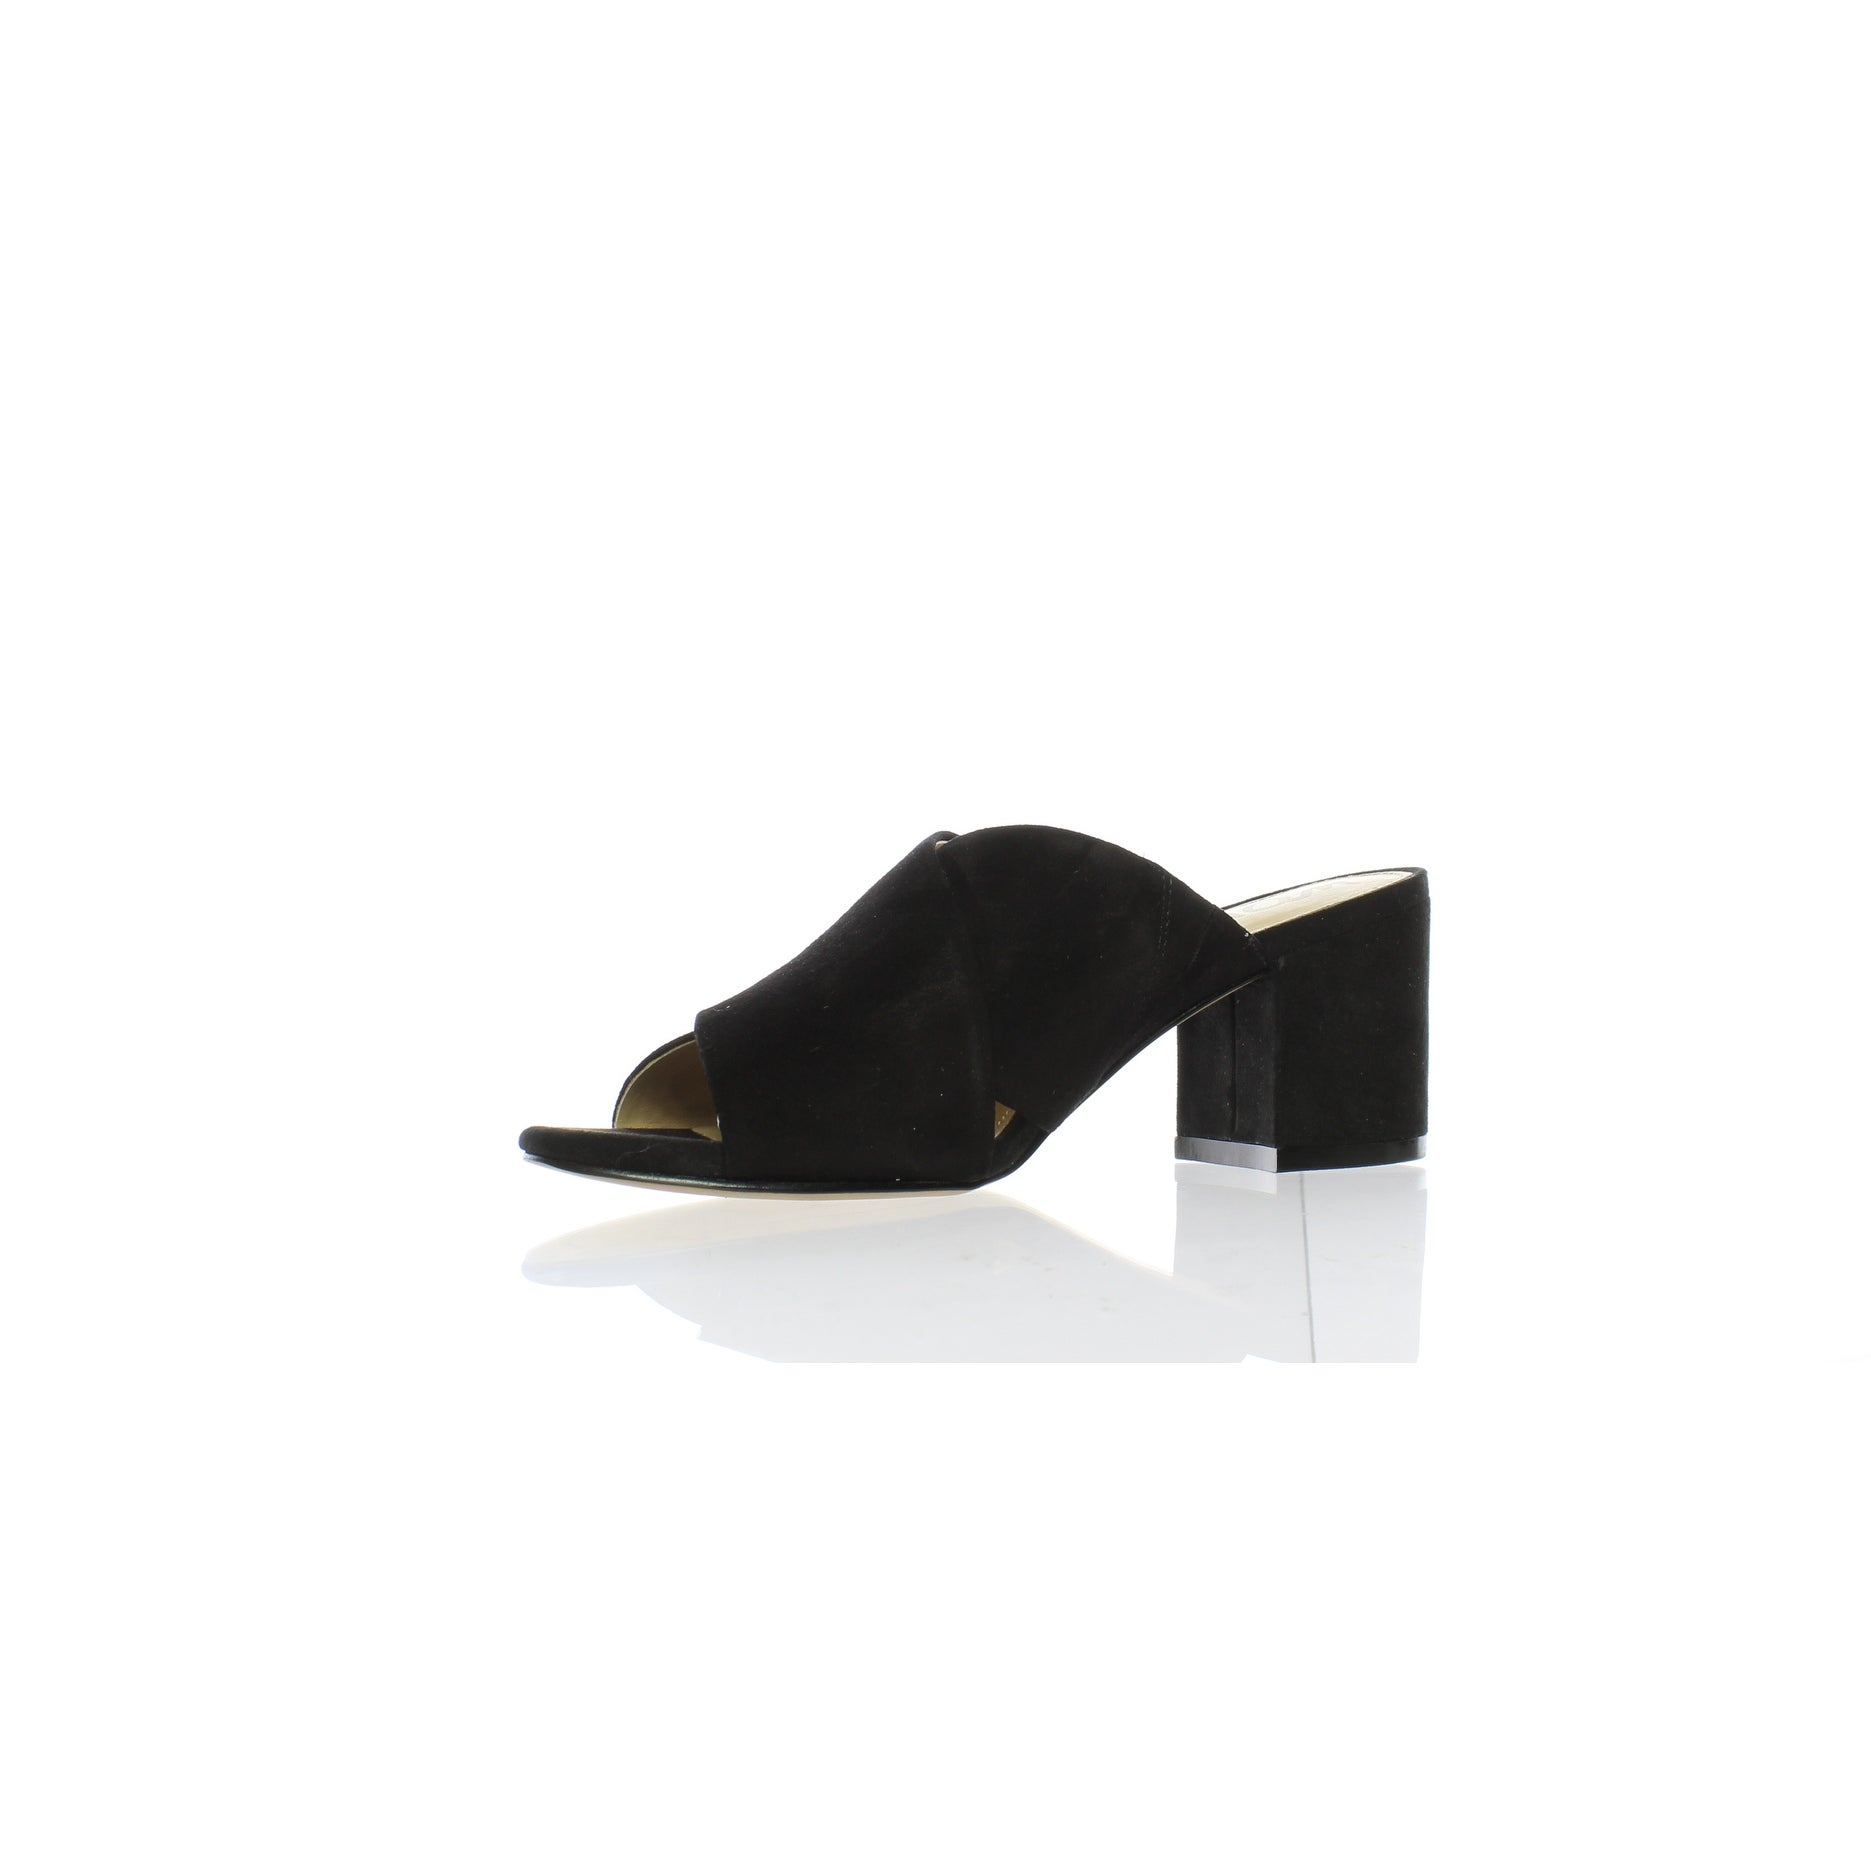 32d0ddda1d77 Shop Sam Edelman Womens Stanley Black Suede Heels Size 5 - On Sale - Free  Shipping On Orders Over  45 - Overstock - 25579880